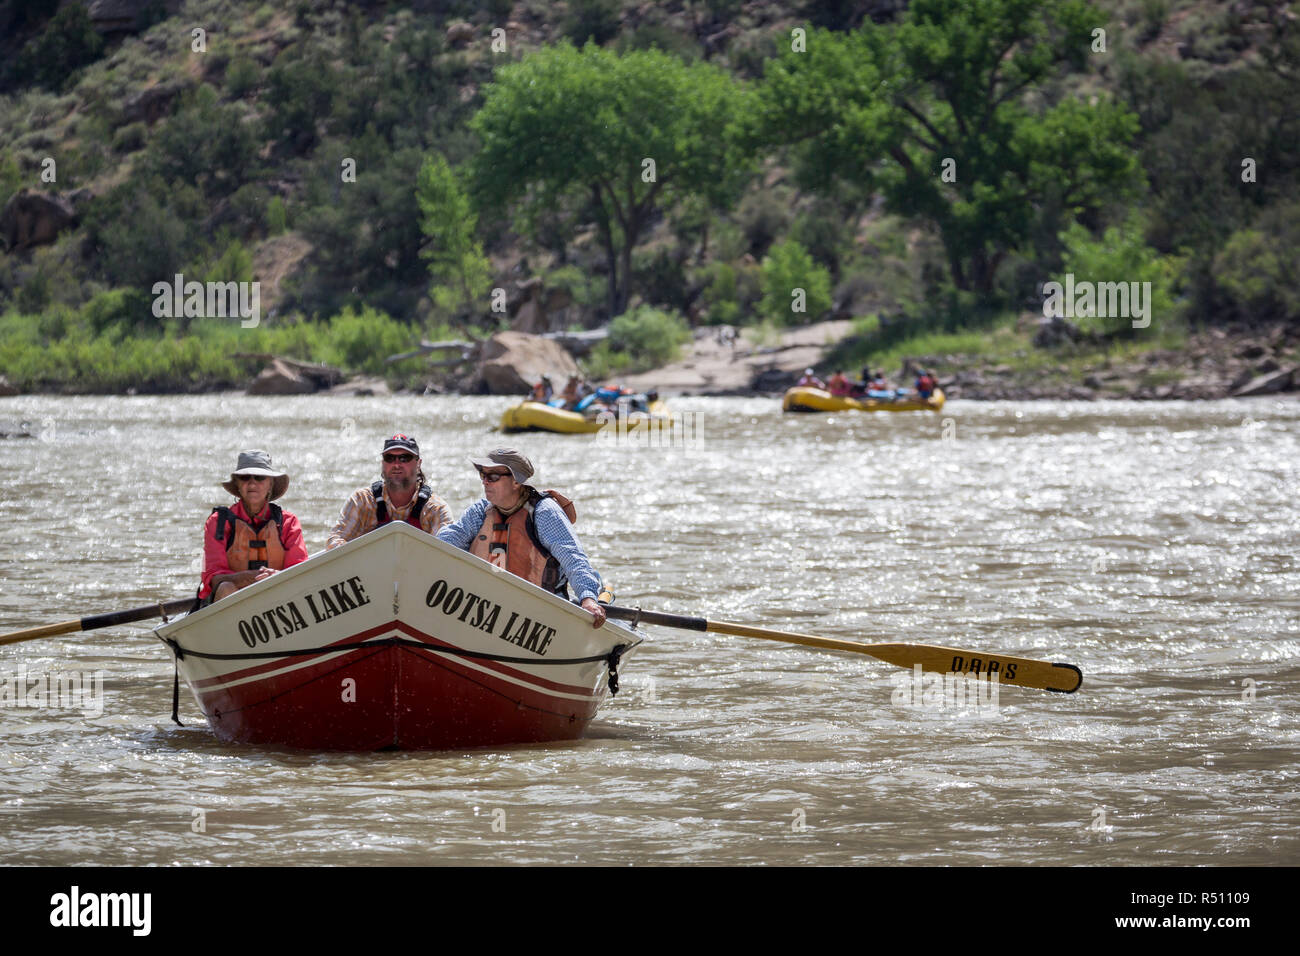 Two women and man paddling in Dory rowboat on Desolation. Gray Canyon section of Green River, Utah, USA - Stock Image